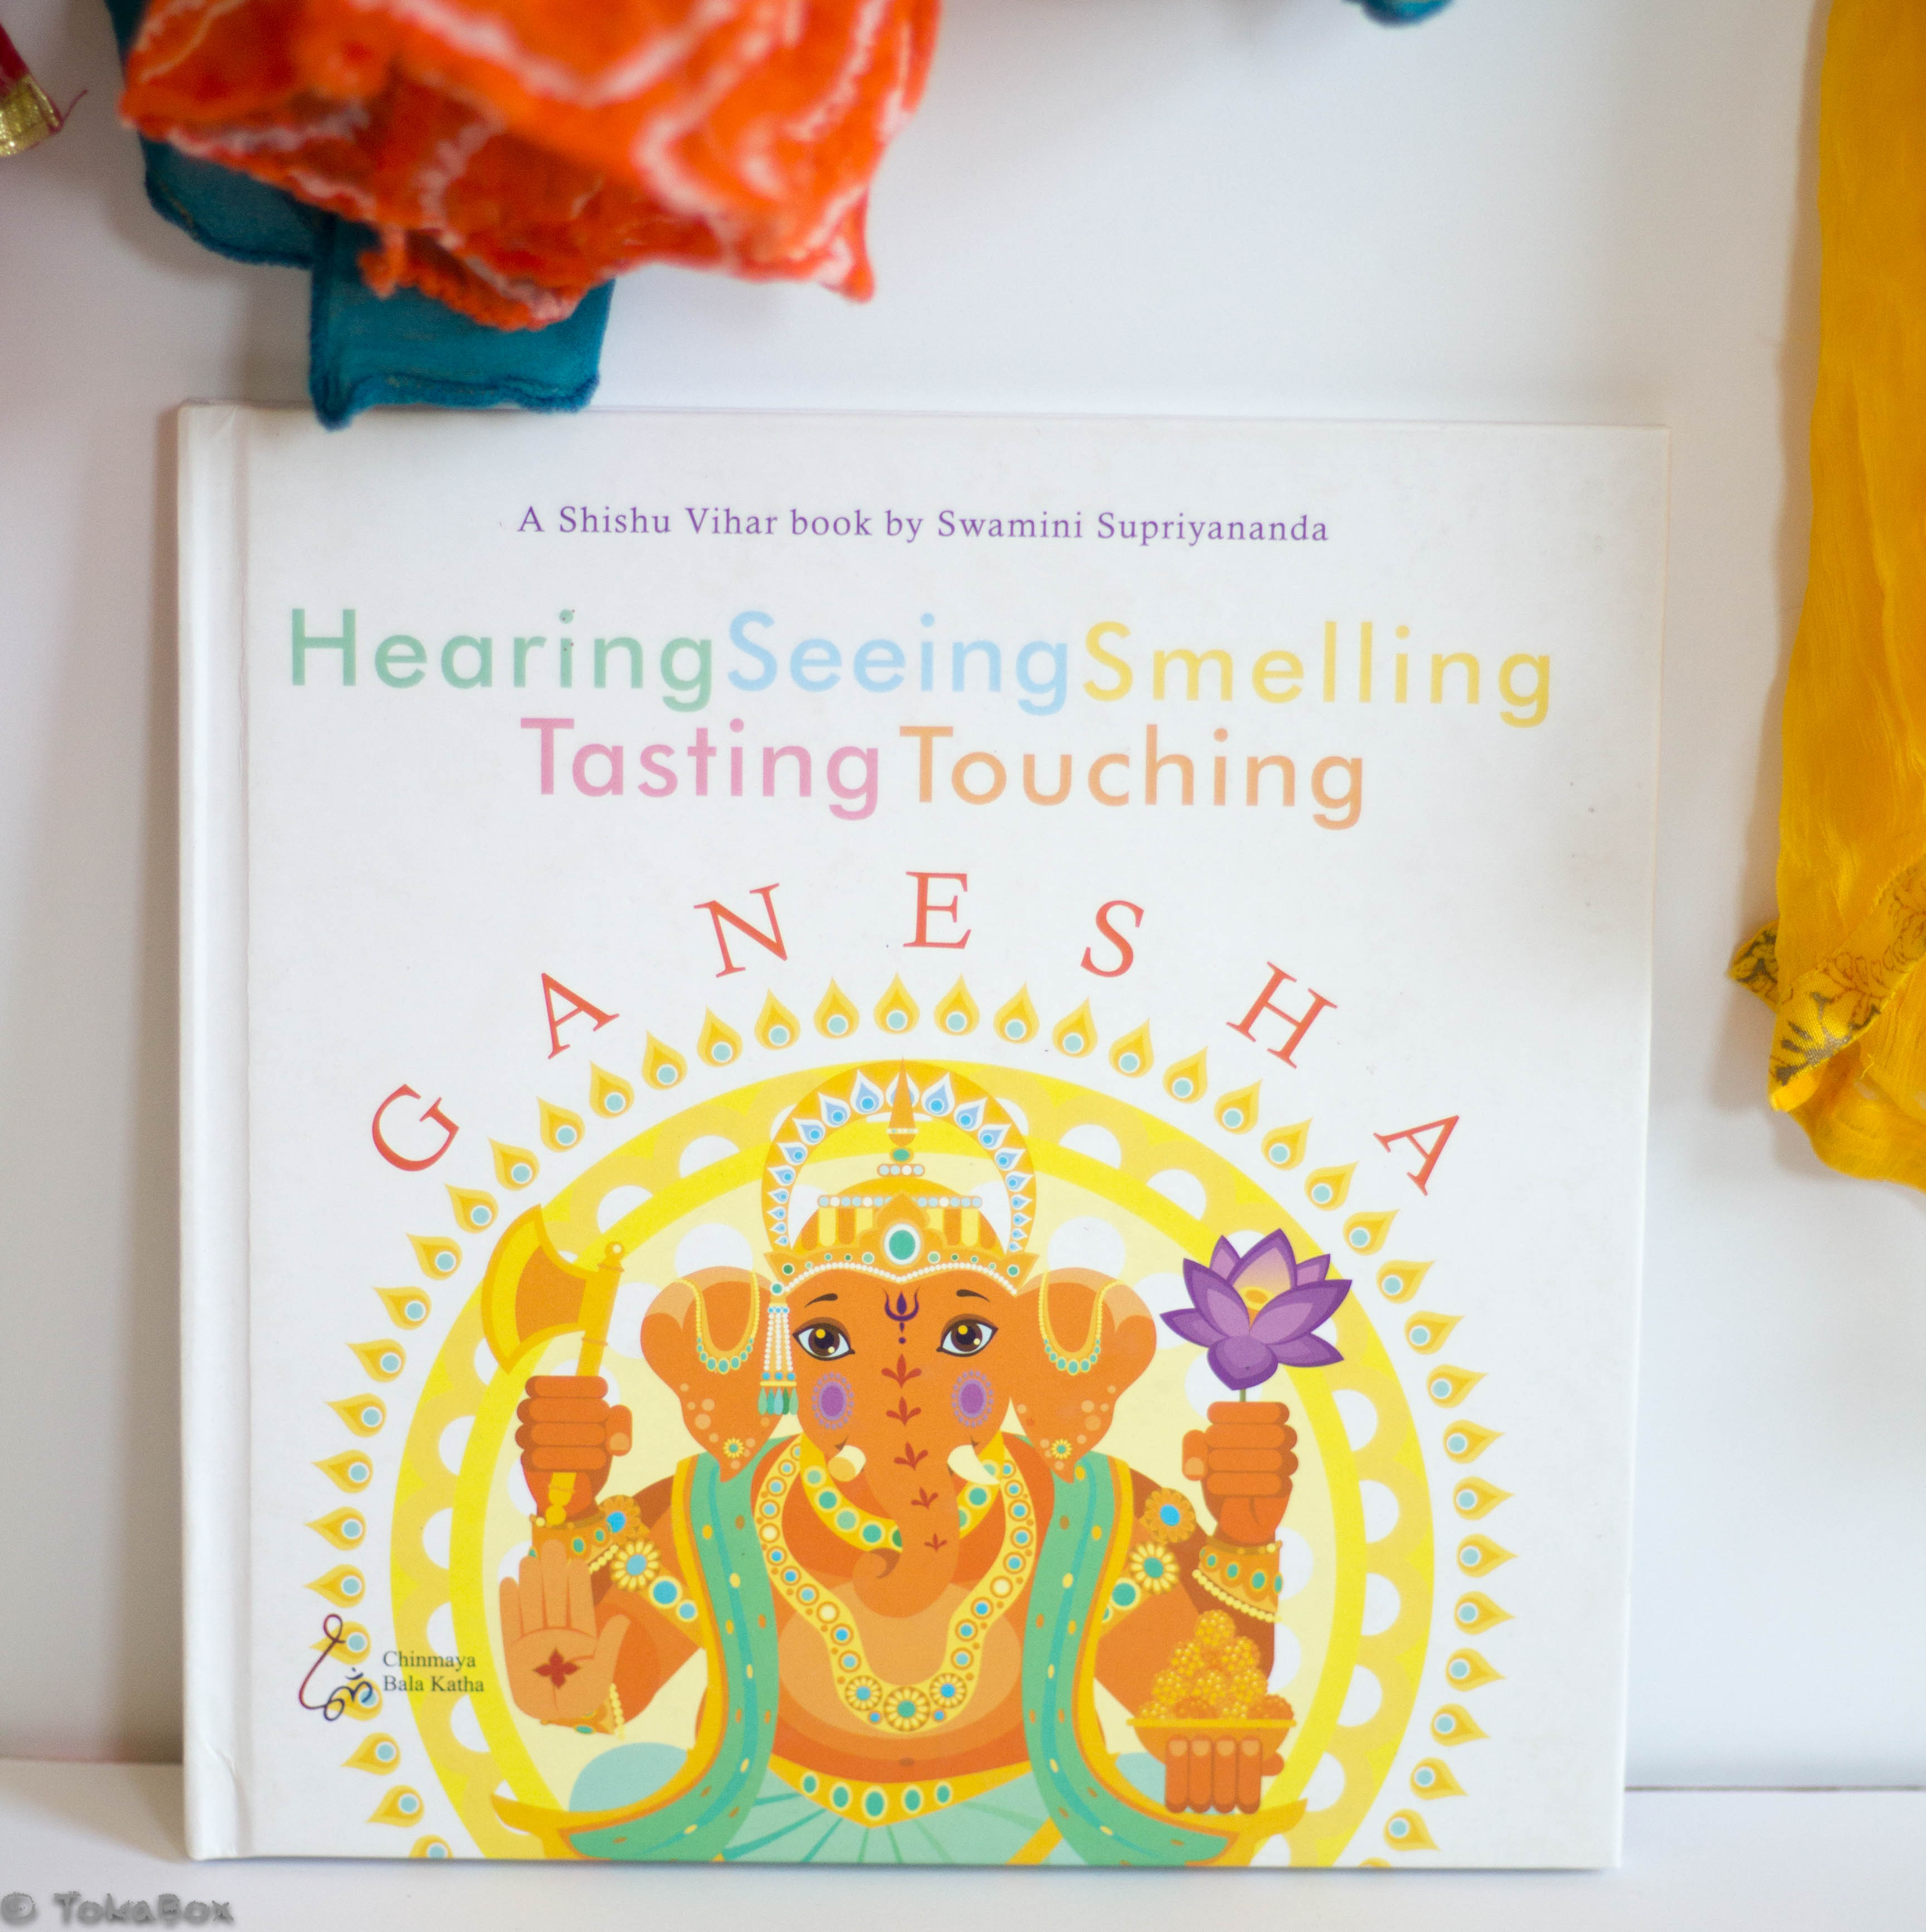 Ganesha - Hearing, Seeing, Smelling, Tasting, Touching